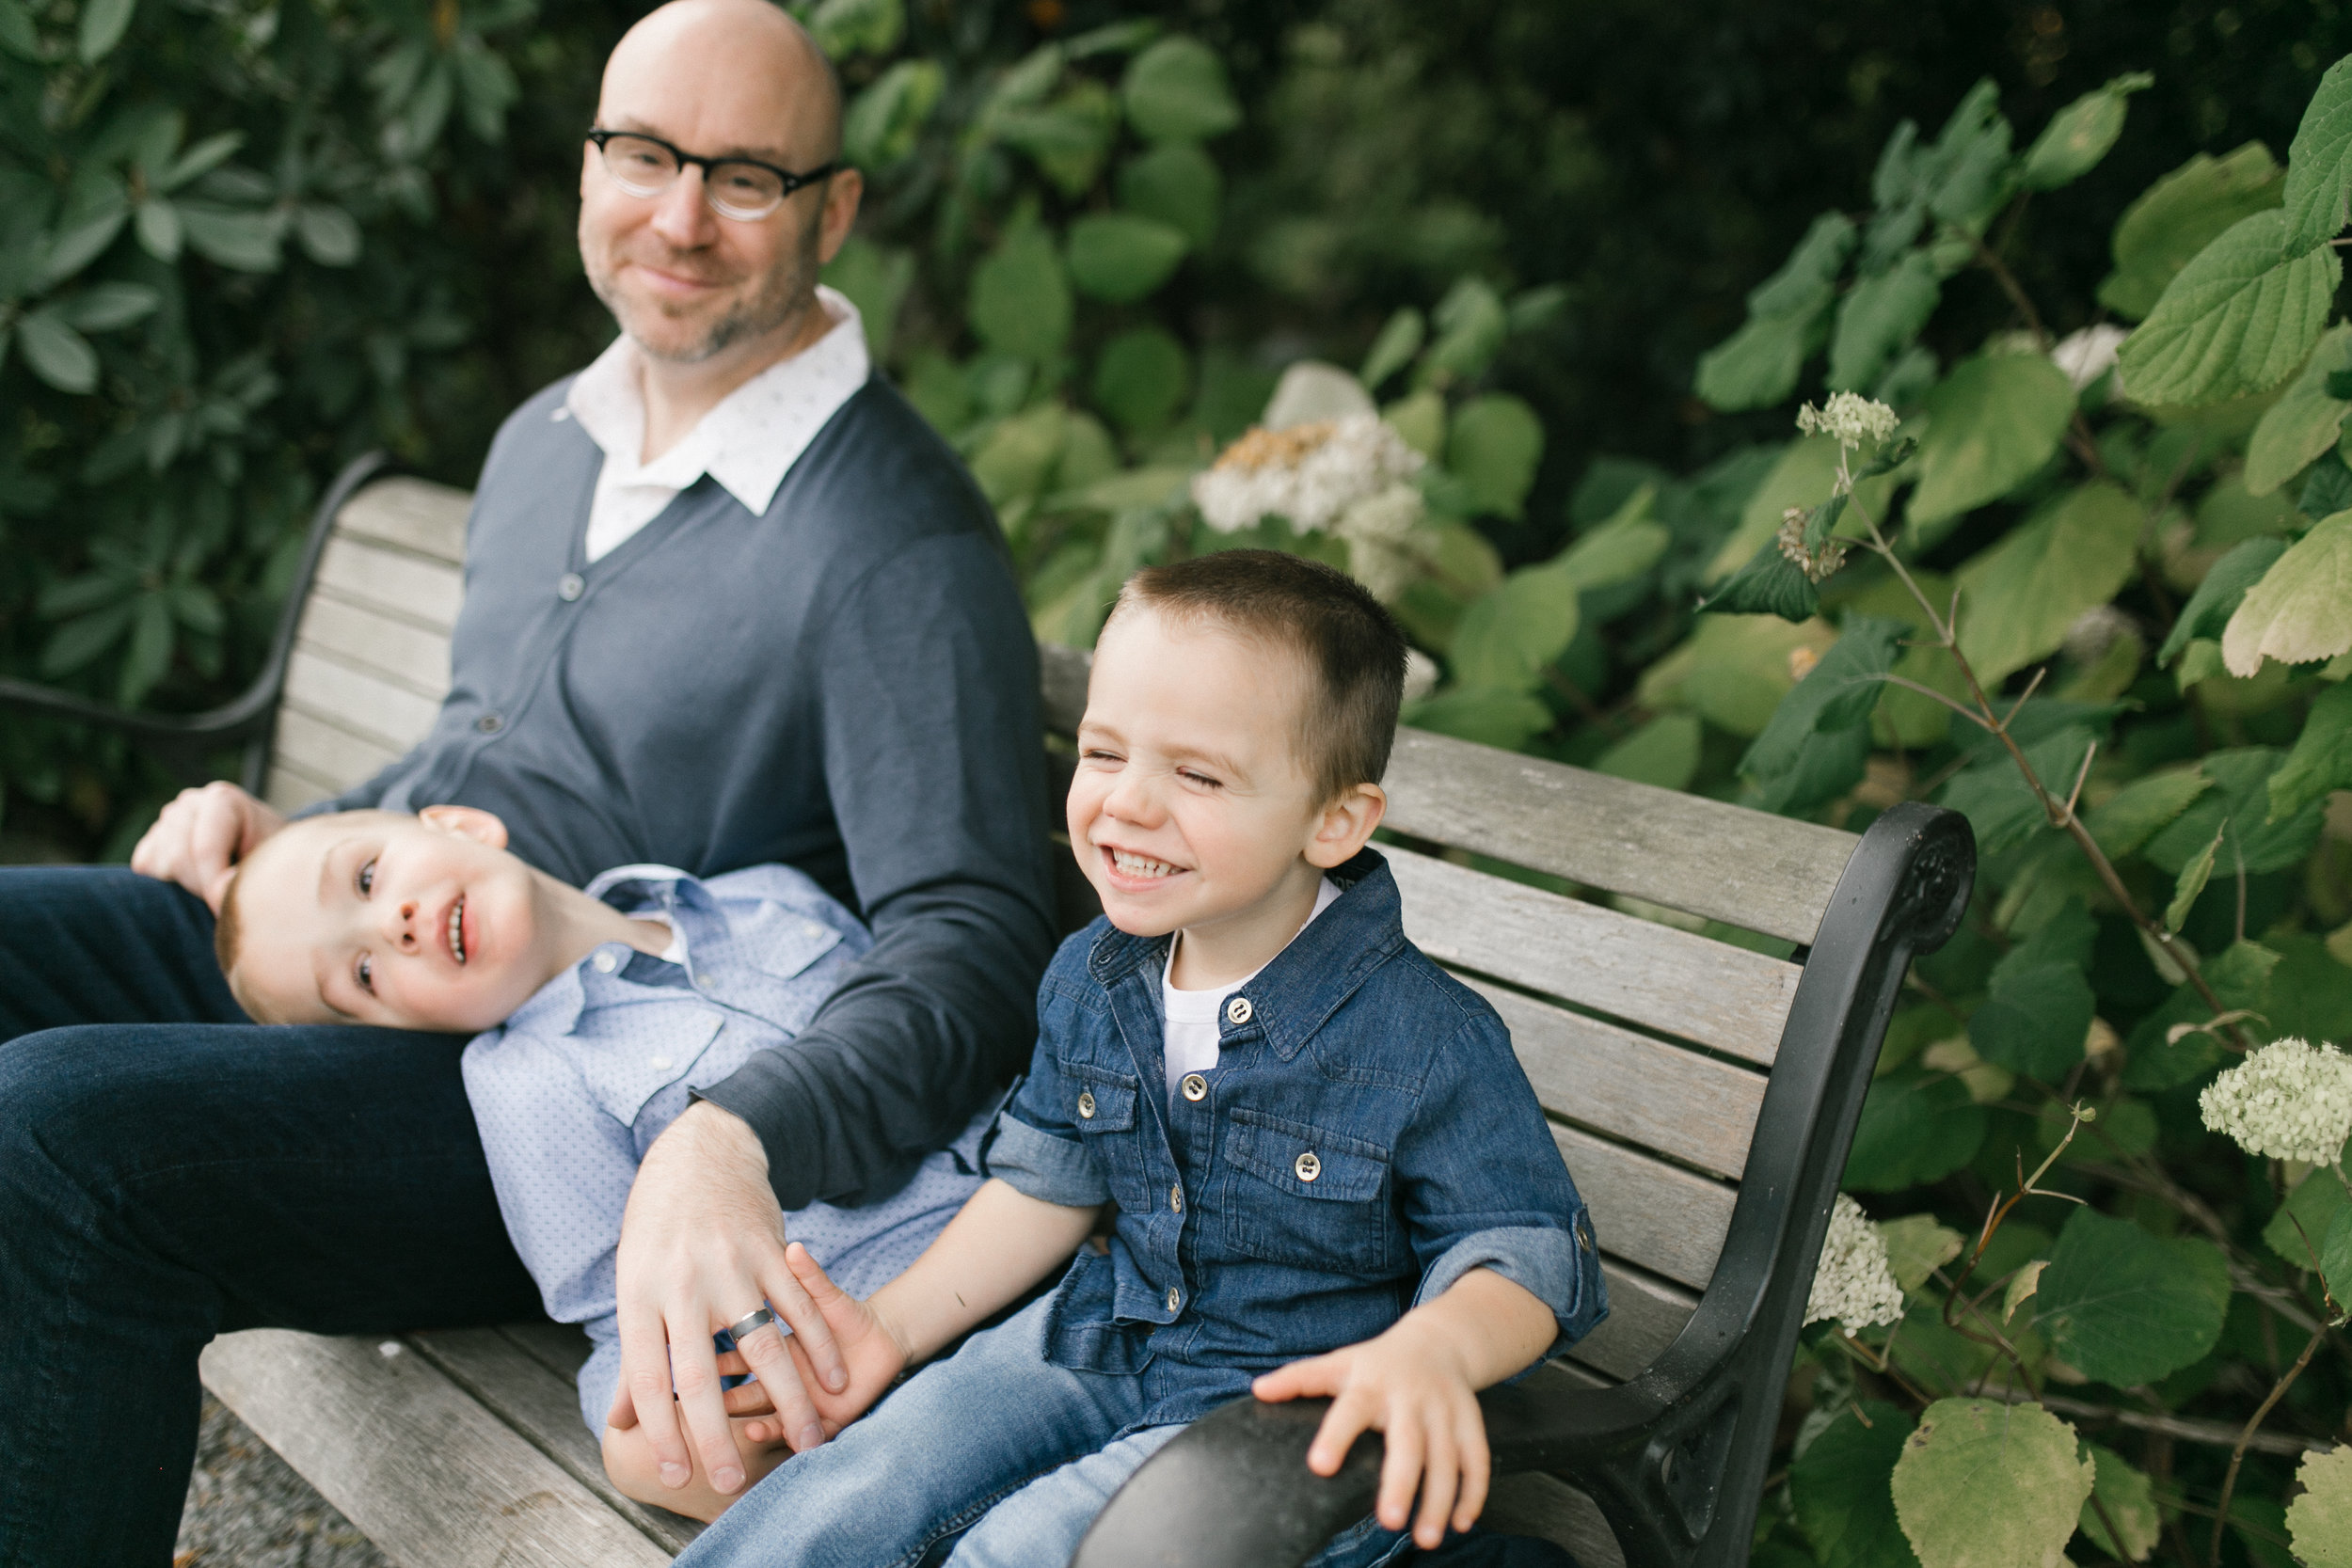 Family photos at Bellevue Botanical Garden, natural light with toddlers   Chelsea Macor Photography-20.jpg